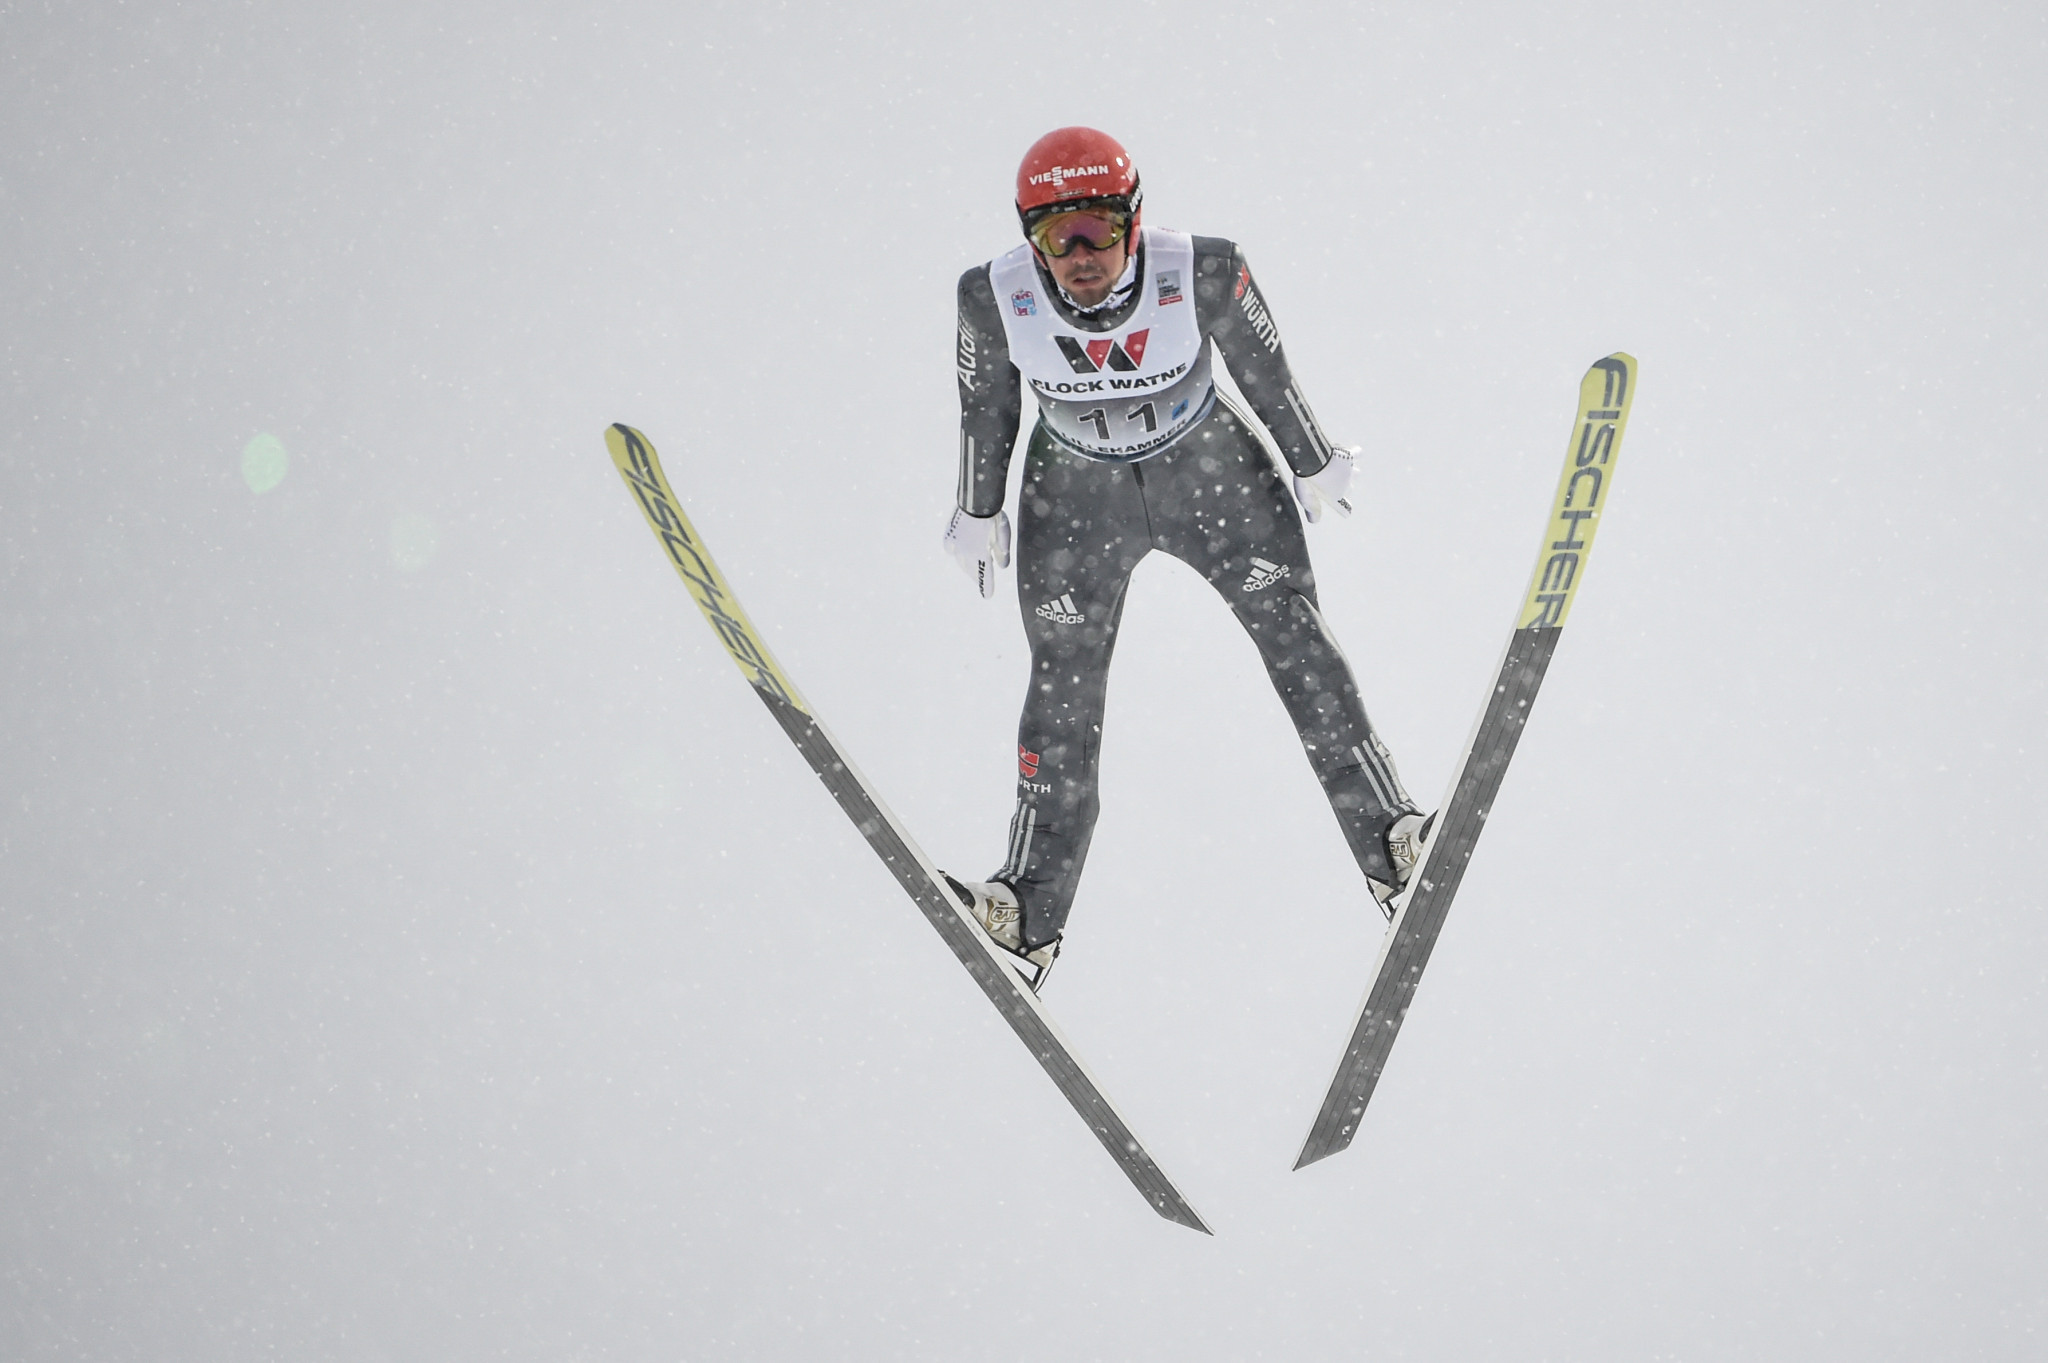 Germany's Johannes Rydzek finished second as he continues his attempt to usurp overall leader Jan Schmid of Norway ©Getty Images